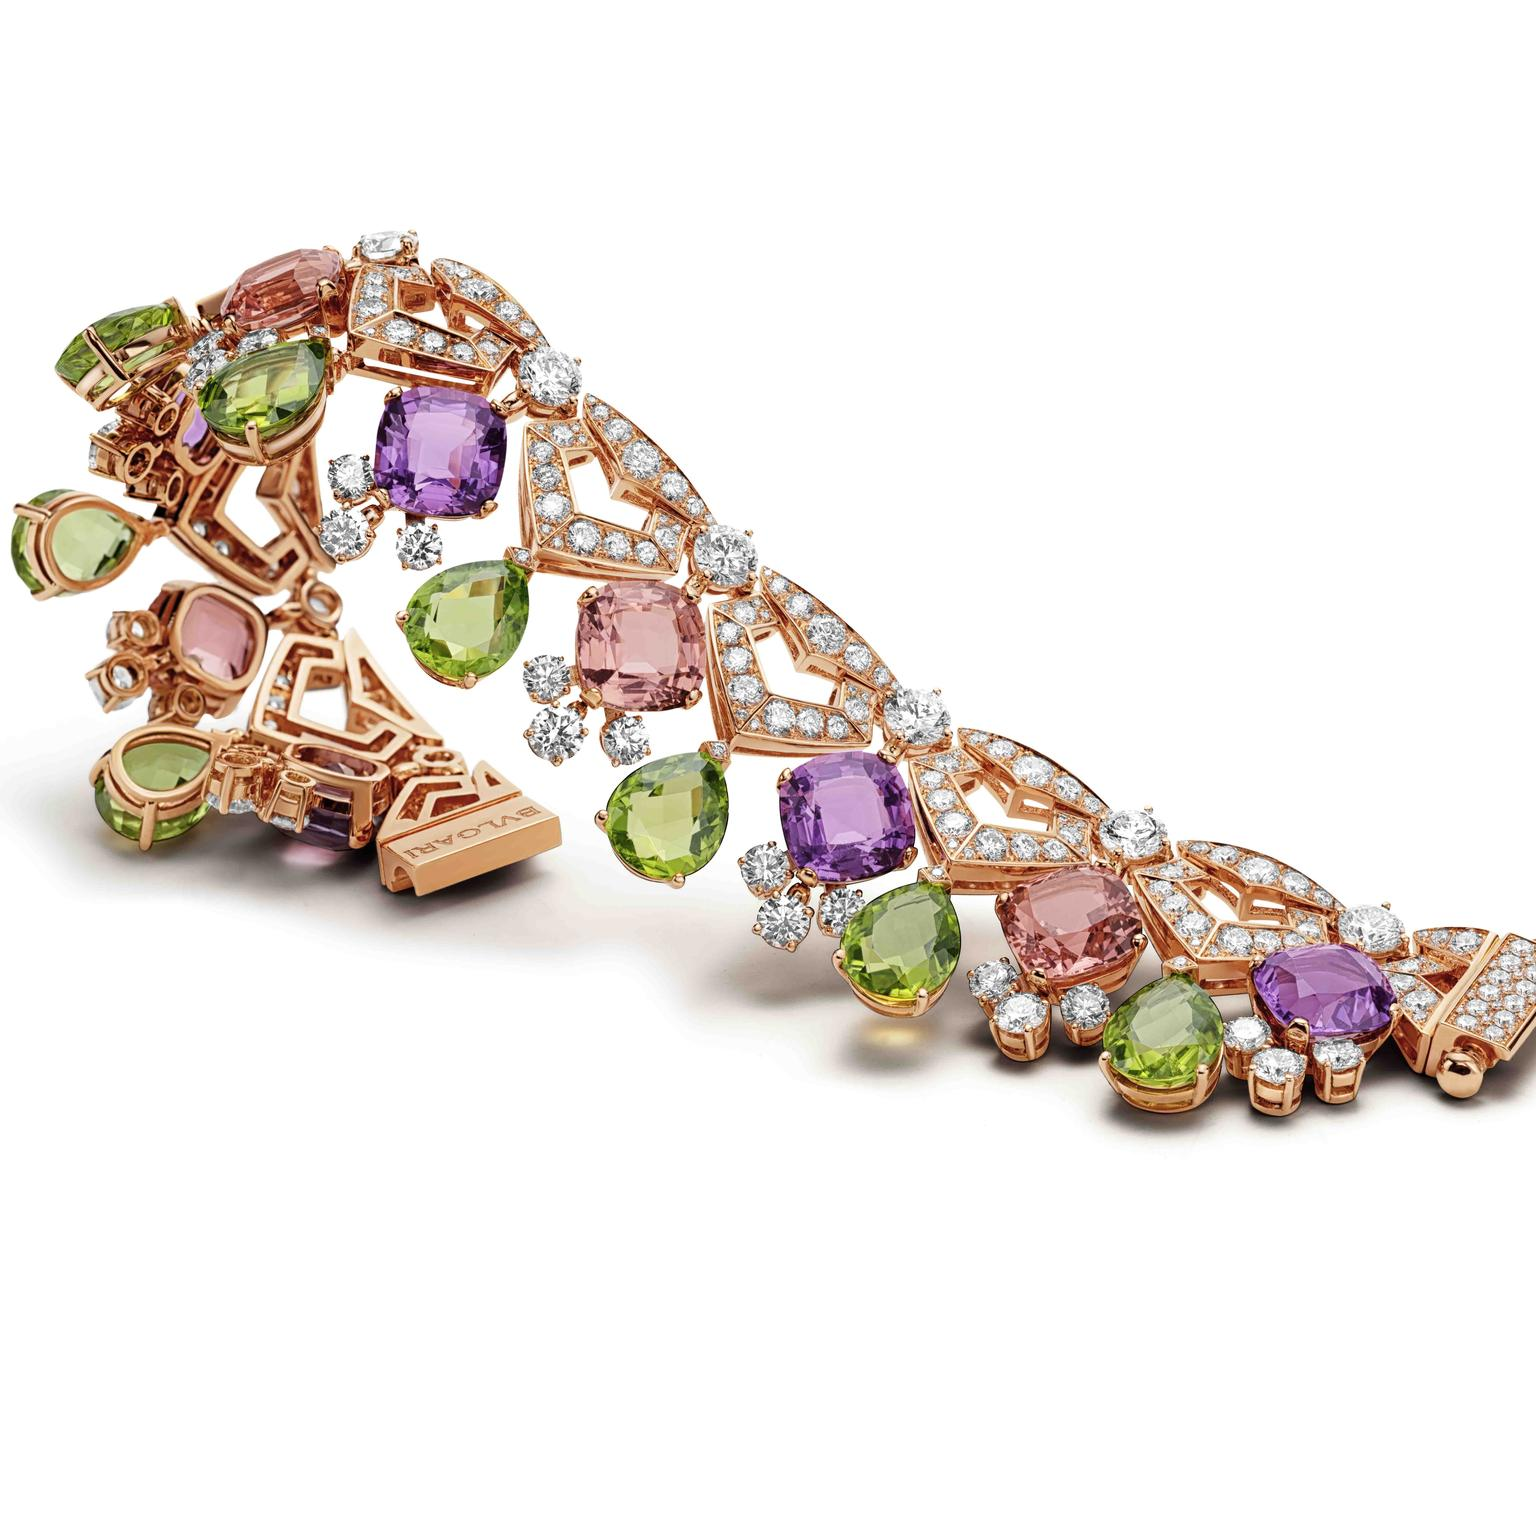 Bulgari Barocko Colour Delight bracelet